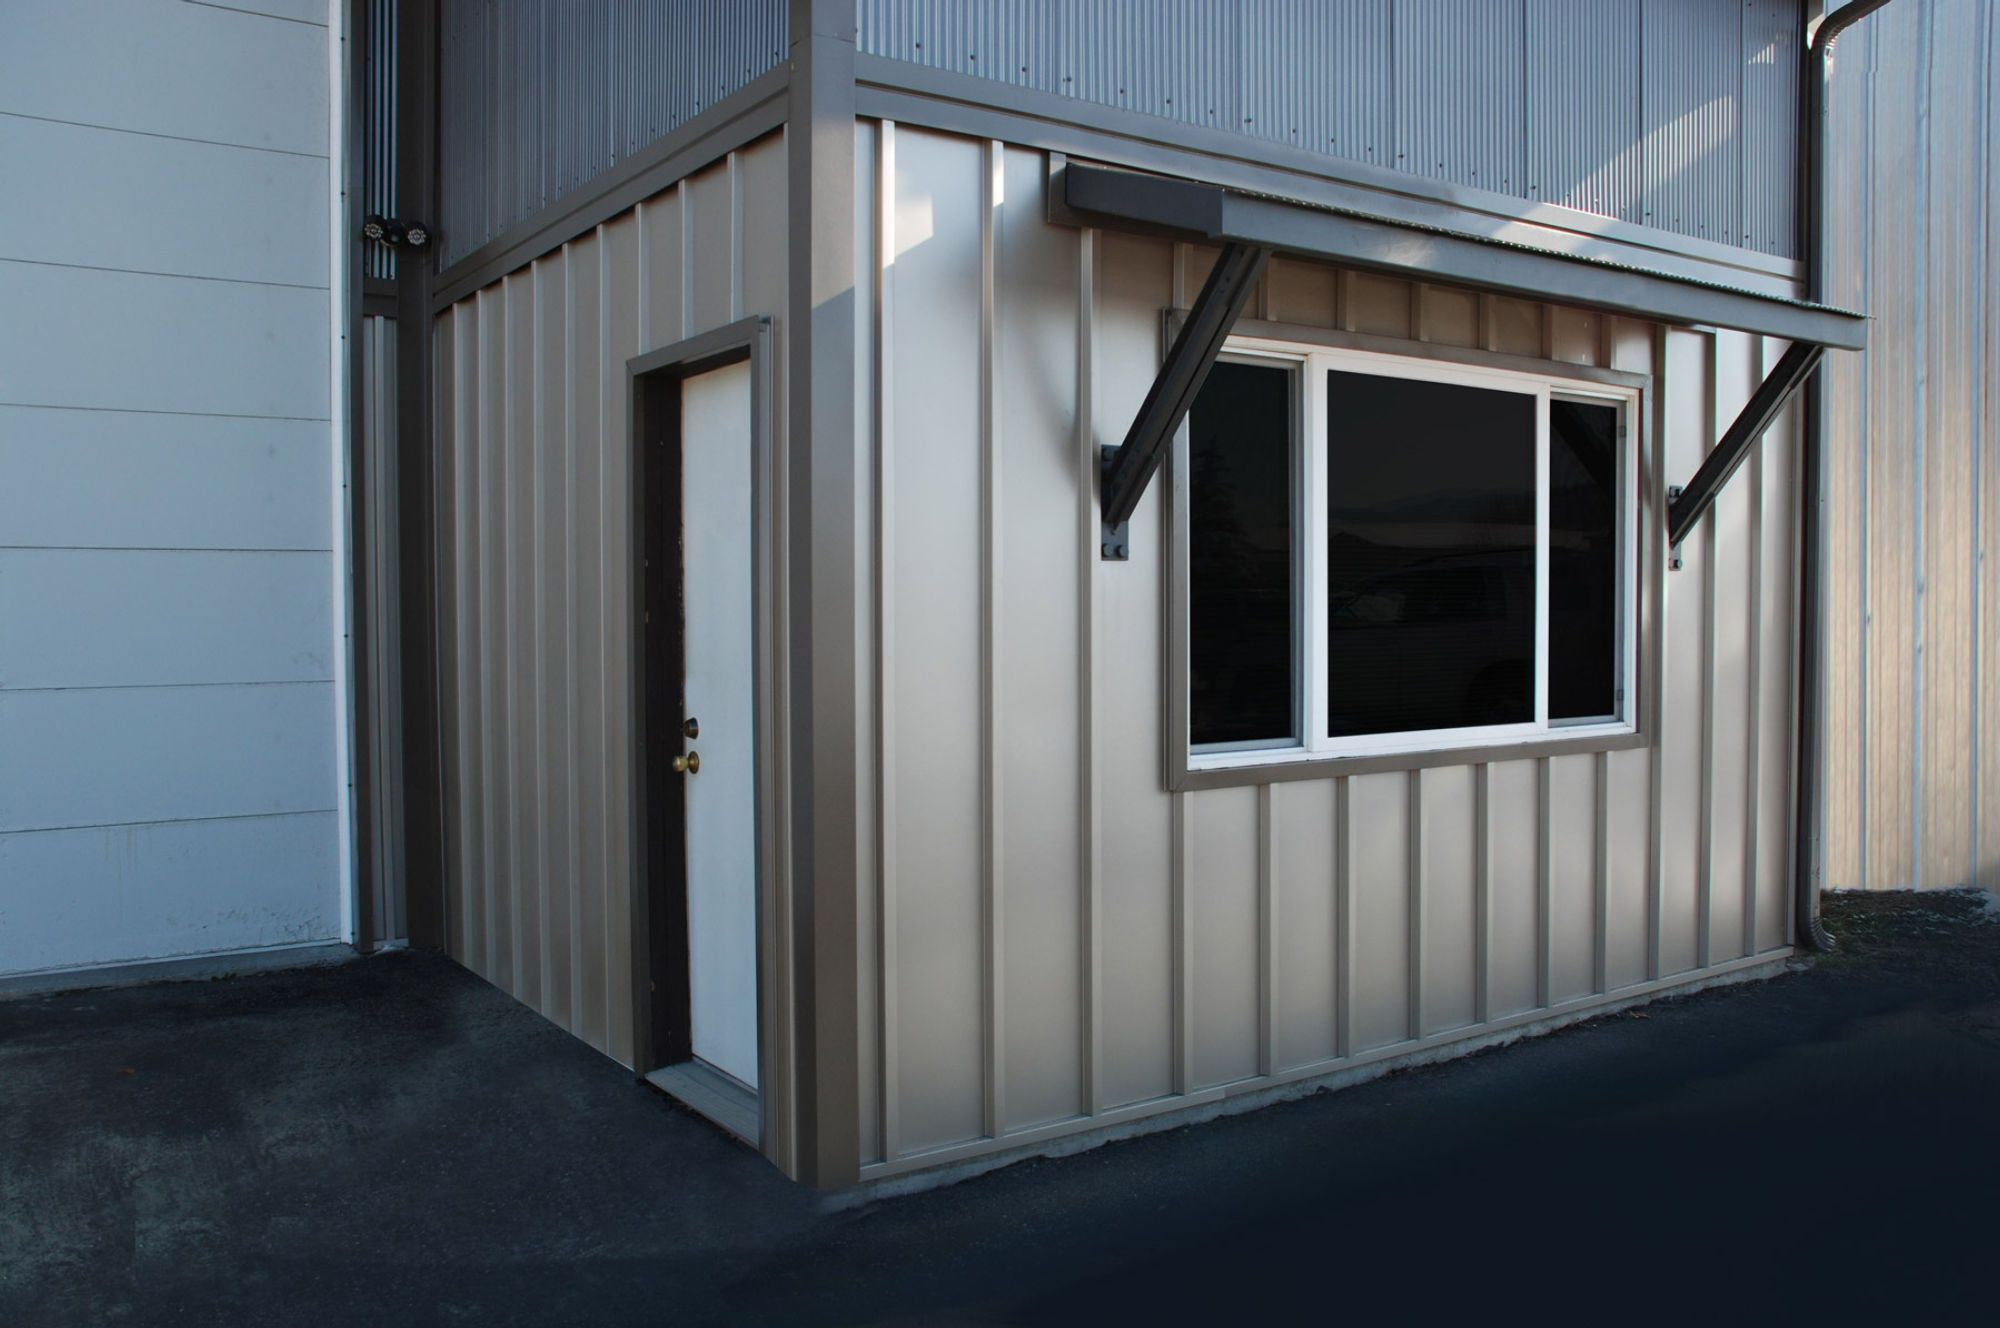 Metal Siding Sheets : Board batten metal siding with corrugated